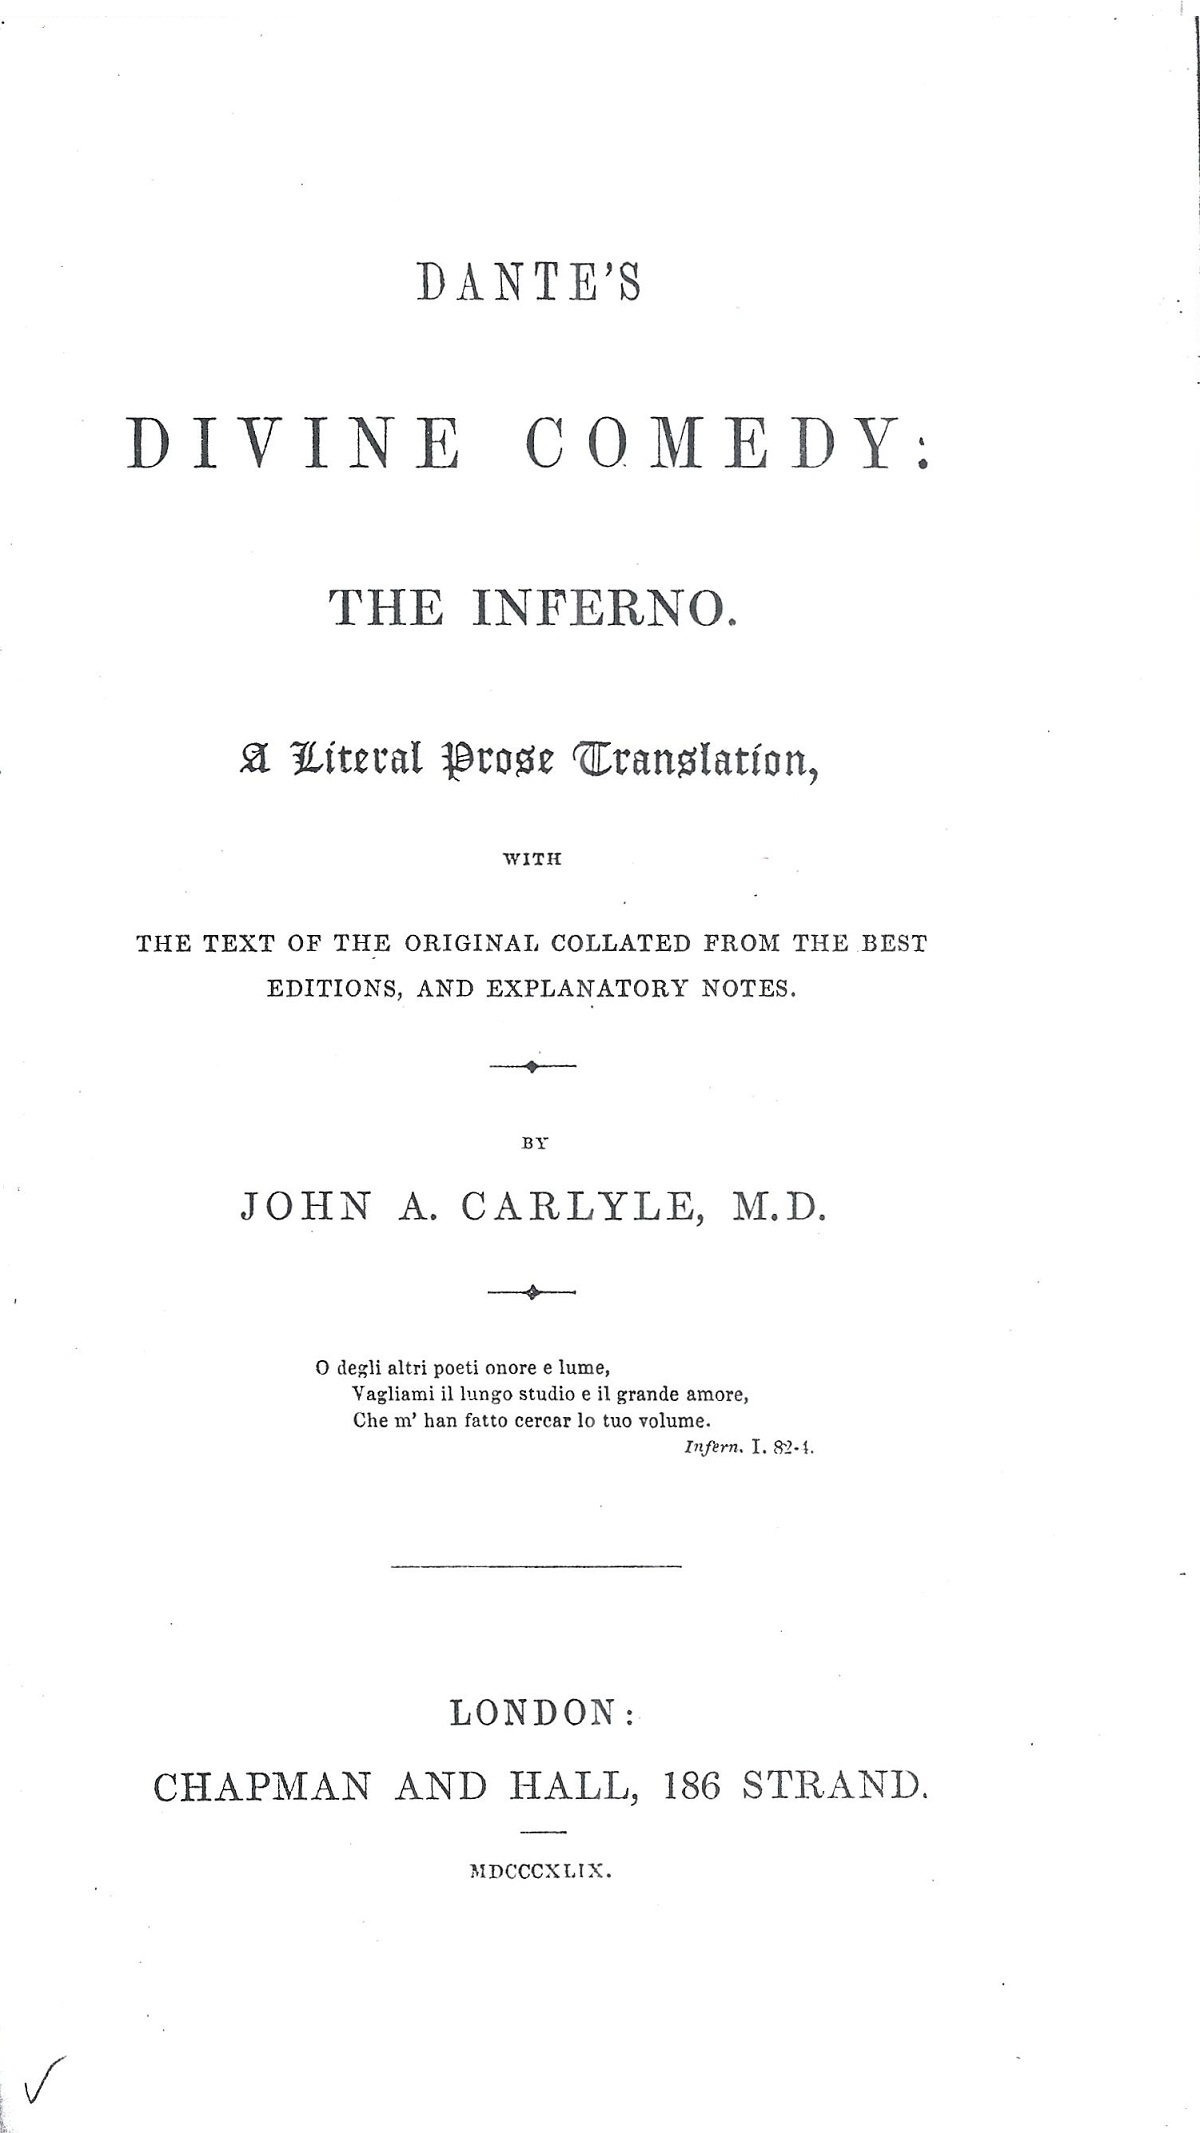 Carlyle – 1849